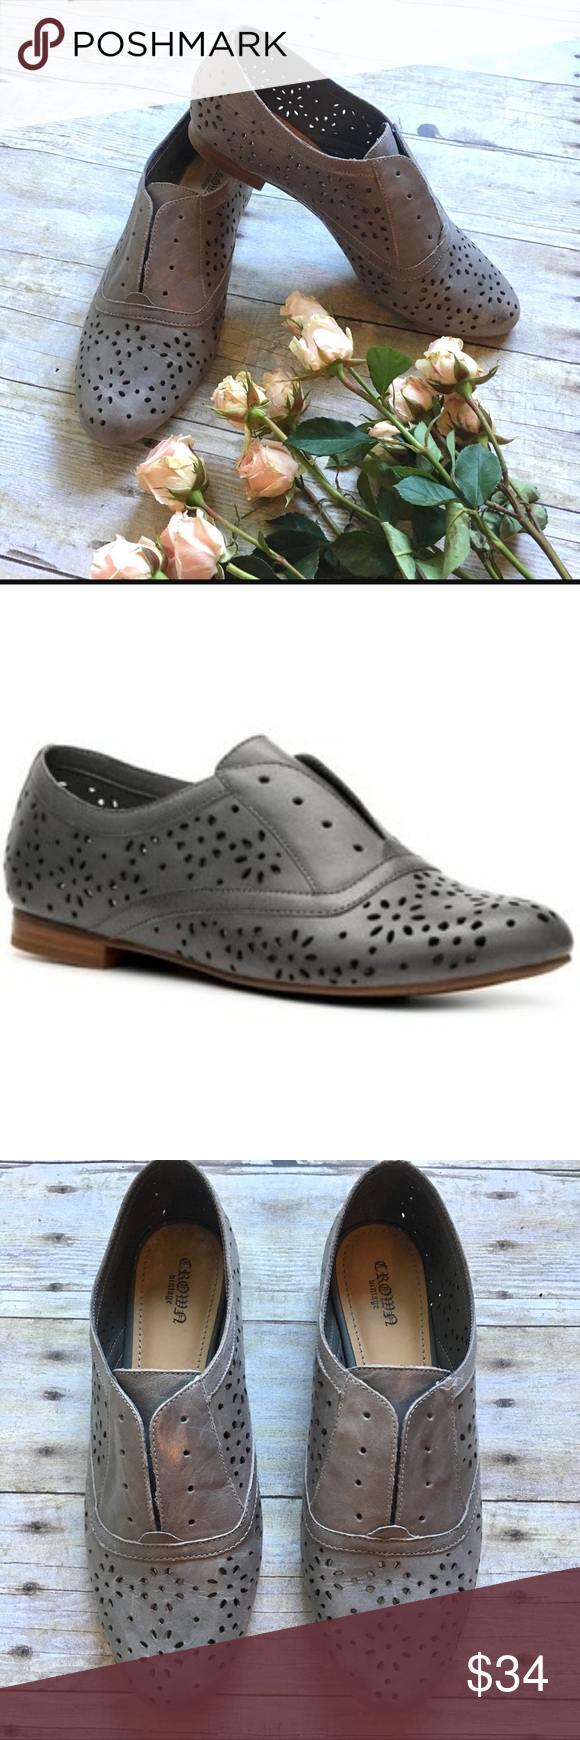 736e626ba5174 Crown Vintage Alexis Oxfords Slip-on oxfords featuring perforated gray  leather and elastic band for a comfortable fit. Leather upper. Manmade  balance.